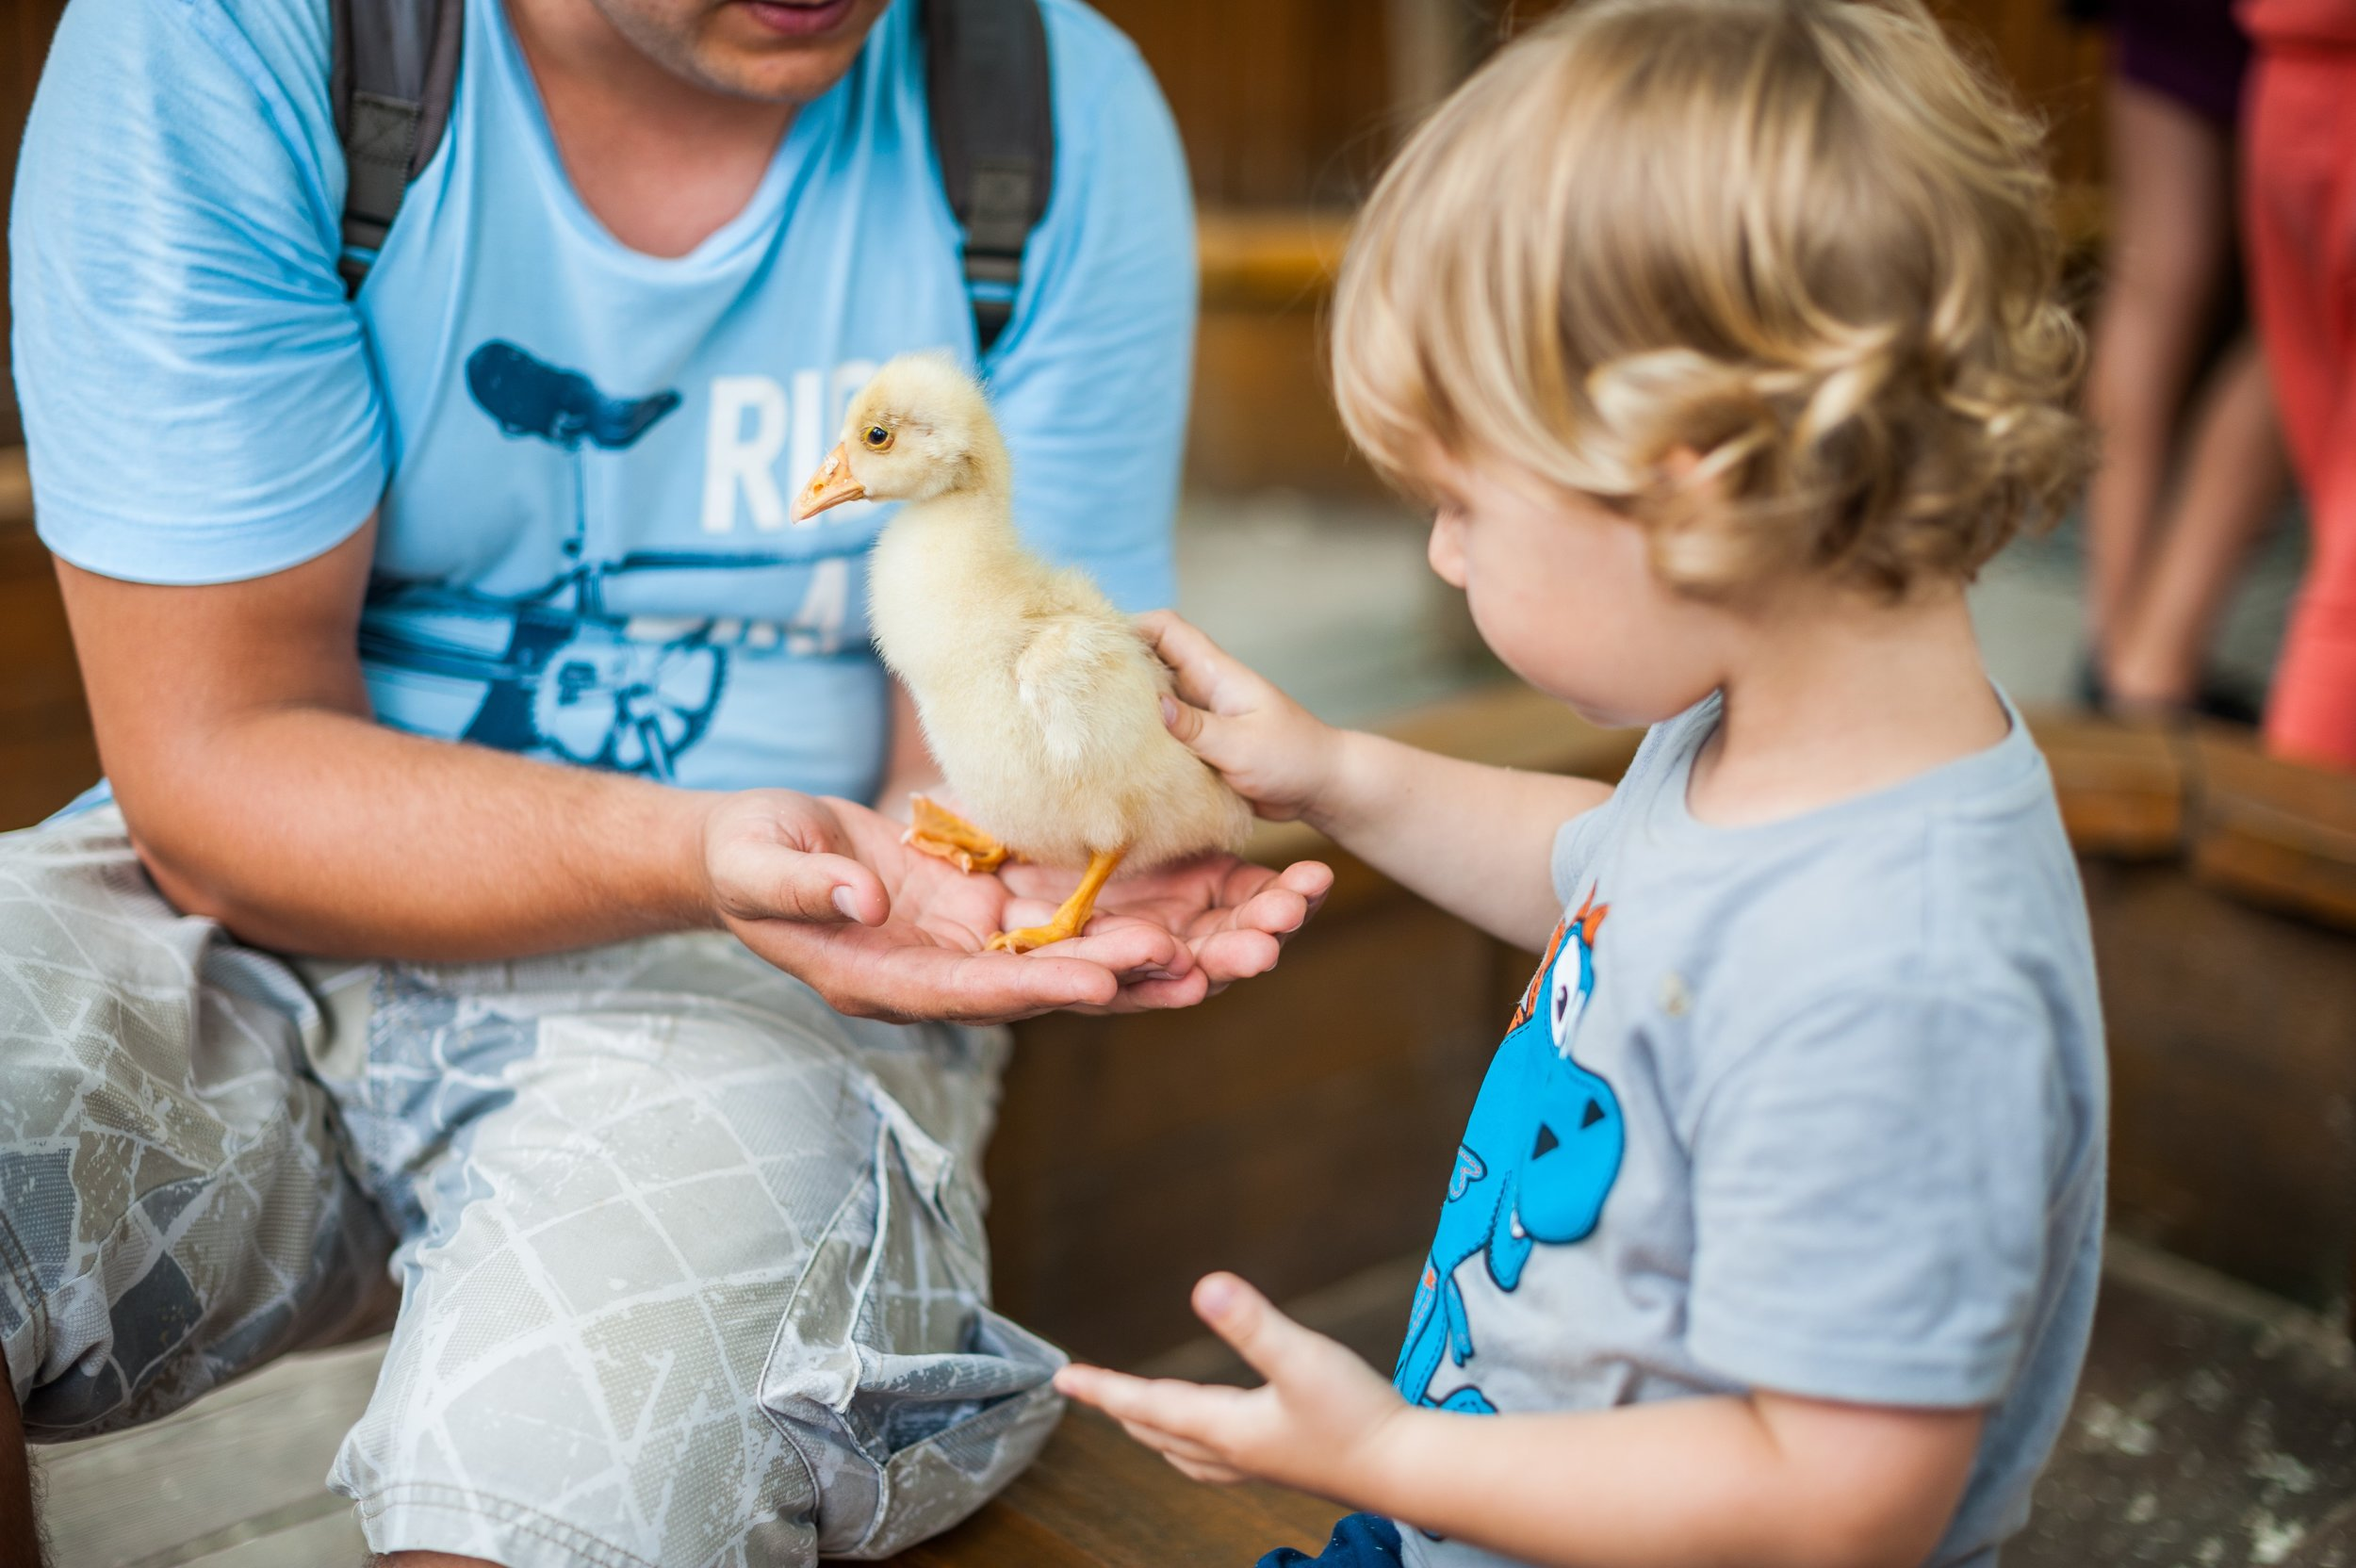 Petting Zoo at Paddy's Markets - Date: Sunday, 7 July 2019, 10:00am-1:00pmLocation: Paddy's Markets, FlemingtonPrice: FreeDetails: Come down to Paddy's Markets Flemington for a special pop up petting zoo! Introduce your little ones to goats, sheep, lamb, ducks, chicks, rabbits and more. The perfect way to make some new furry friends. While you are there, keep the bigger kids busy with plenty of food and shopping!